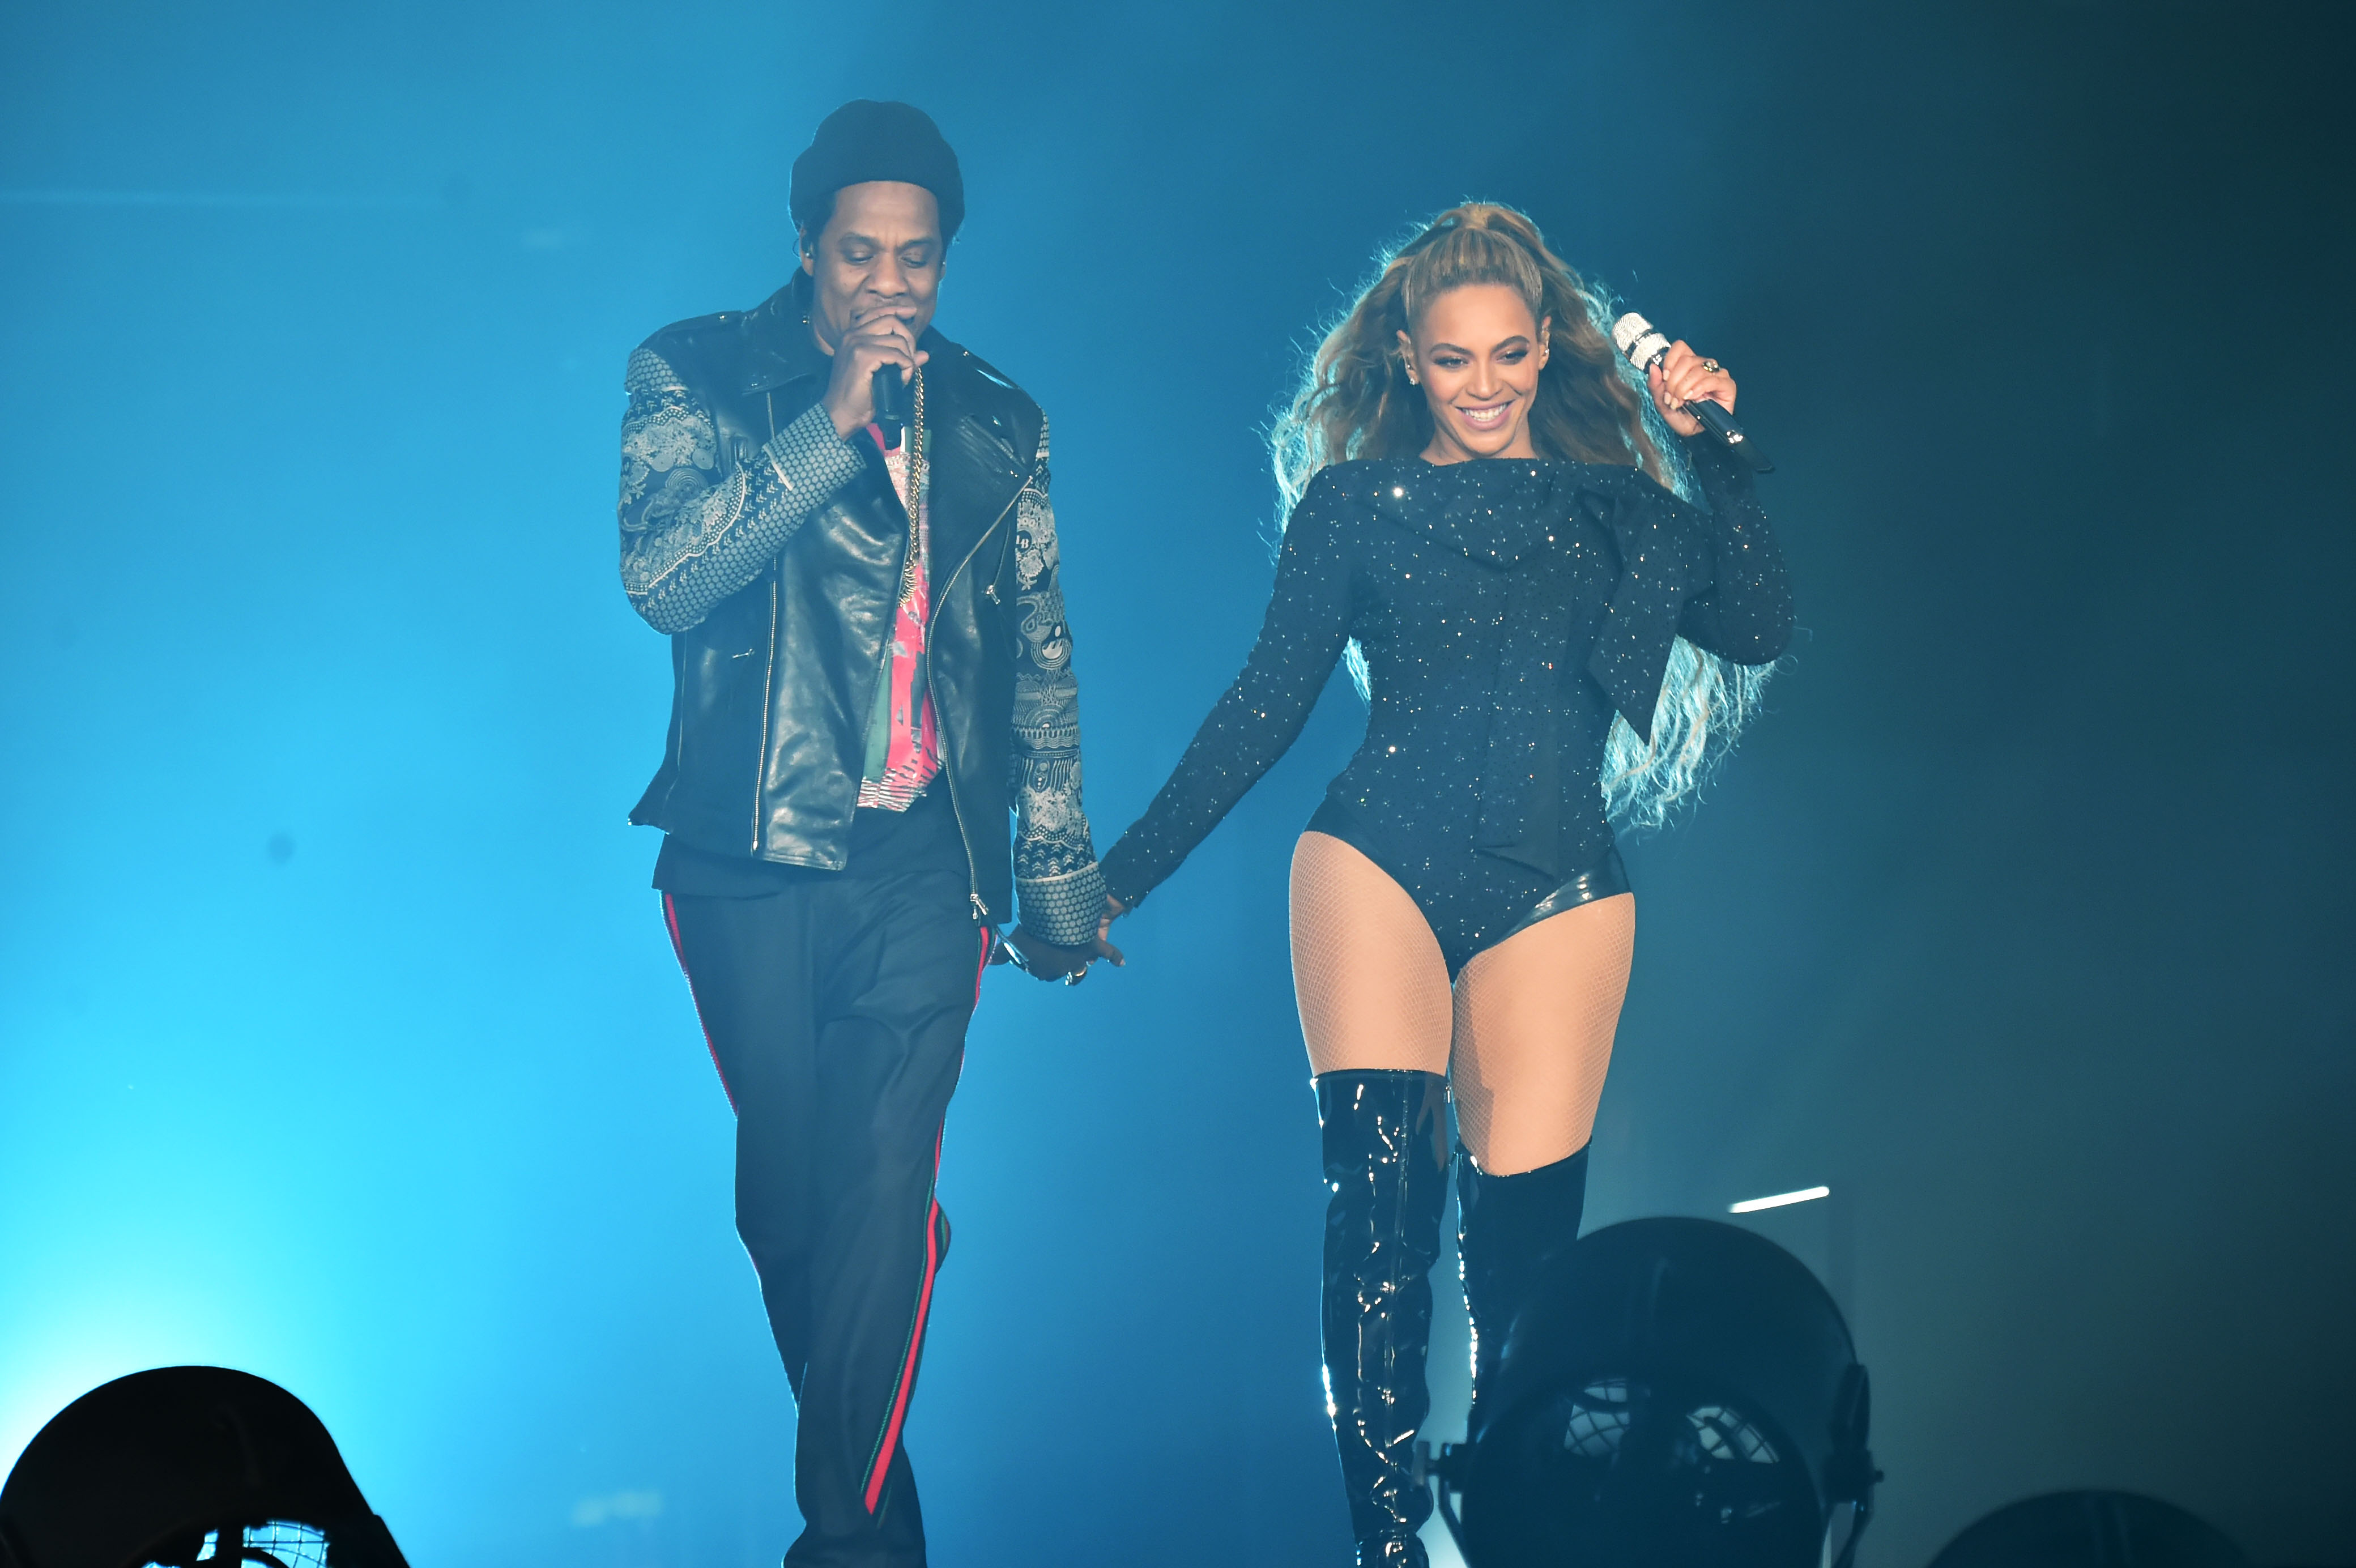 Beyonce and Jay-Z perform together holding hands on stage during the  On the Run II  Tour at Hampden Park on June 9, 2018 in Glasgow, Scotland.